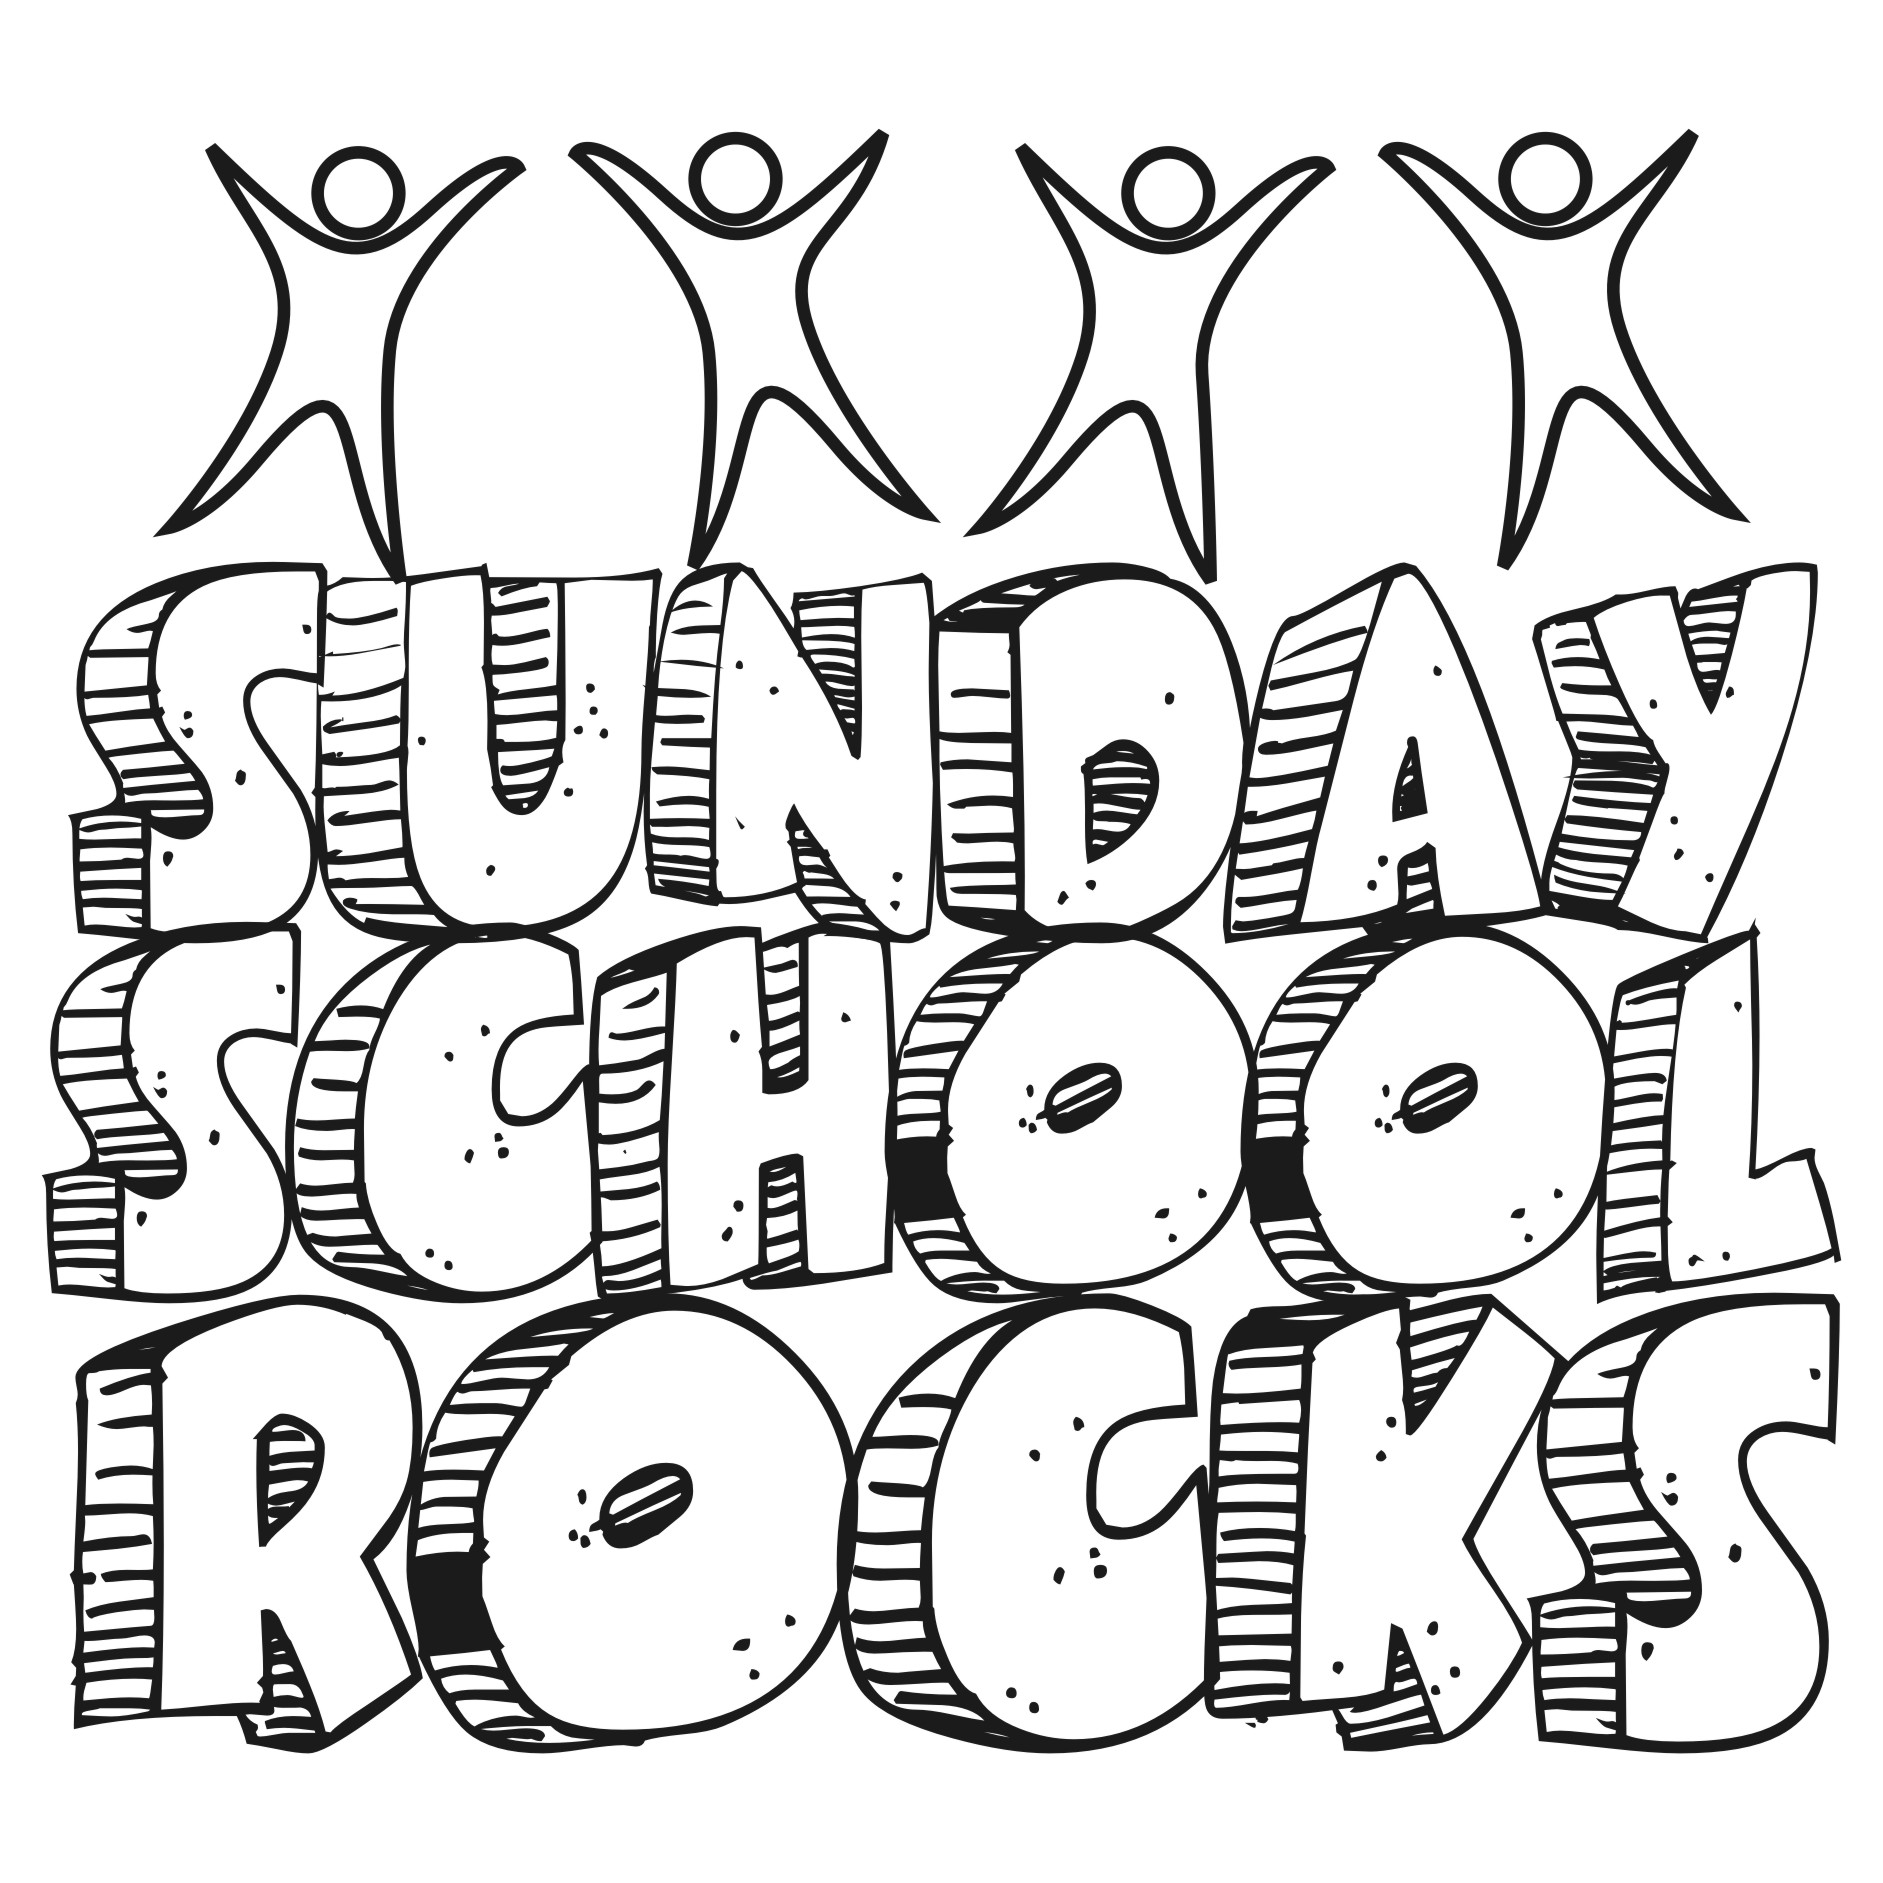 Rocks clipart school. Design ideas religious sunday